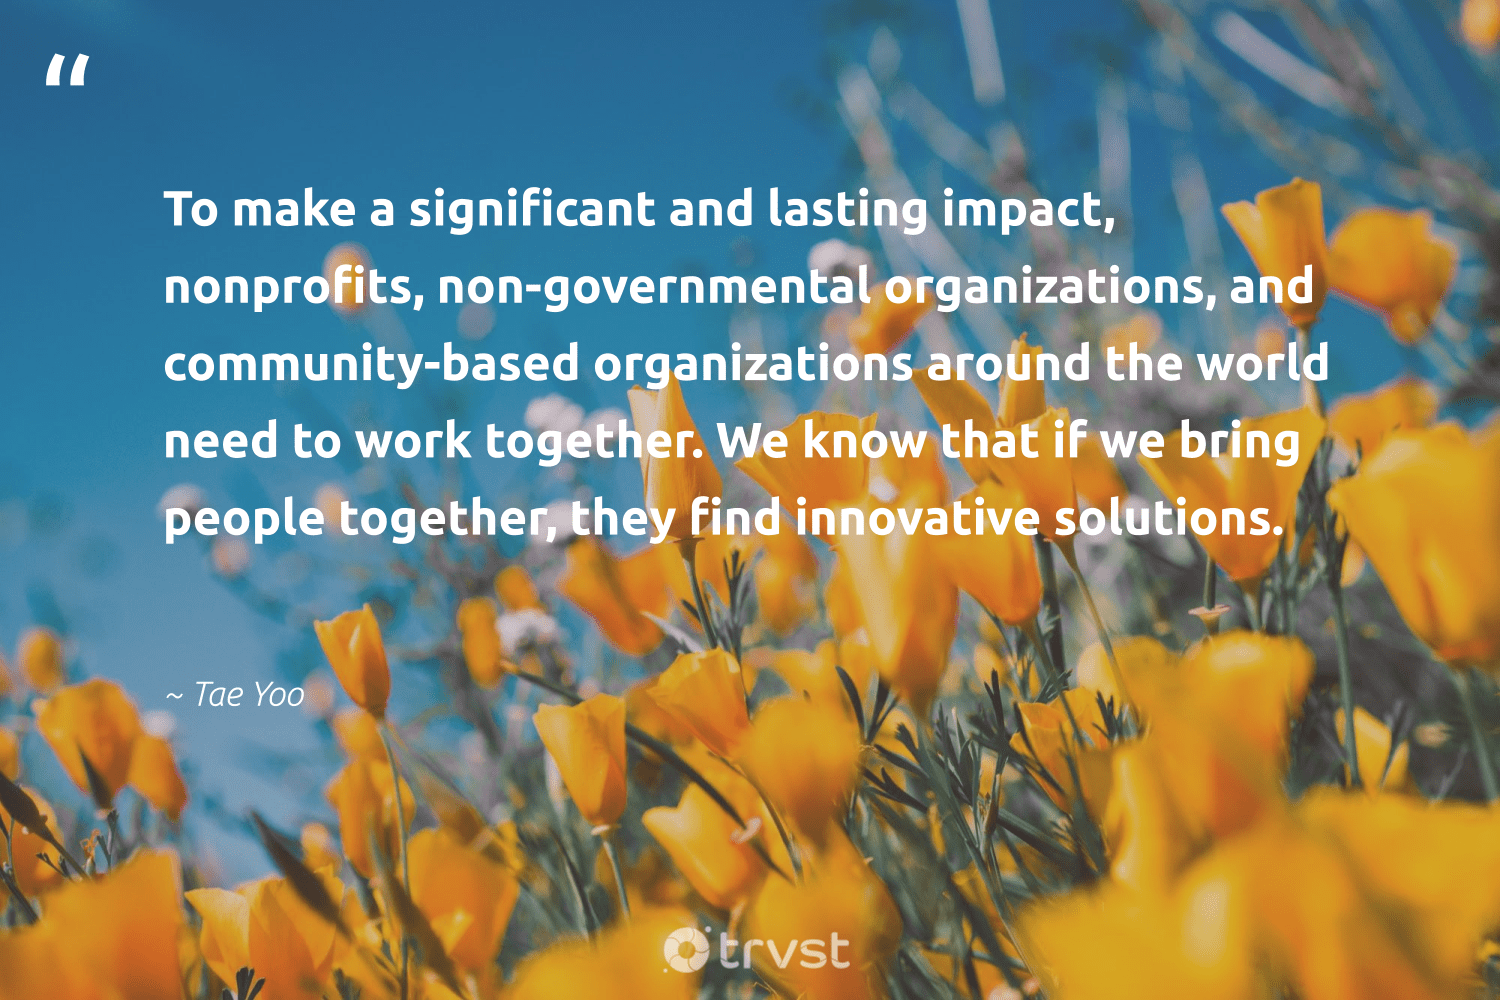 """""""To make a significant and lasting impact, nonprofits, non-governmental organizations, and community-based organizations around the world need to work together. We know that if we bring people together, they find innovative solutions.""""  - Tae Yoo #trvst #quotes #impact #betterplanet #bethechange #socialchange #thinkgreen #makeadifference #ecoconscious #weareallone #beinspired #giveback"""